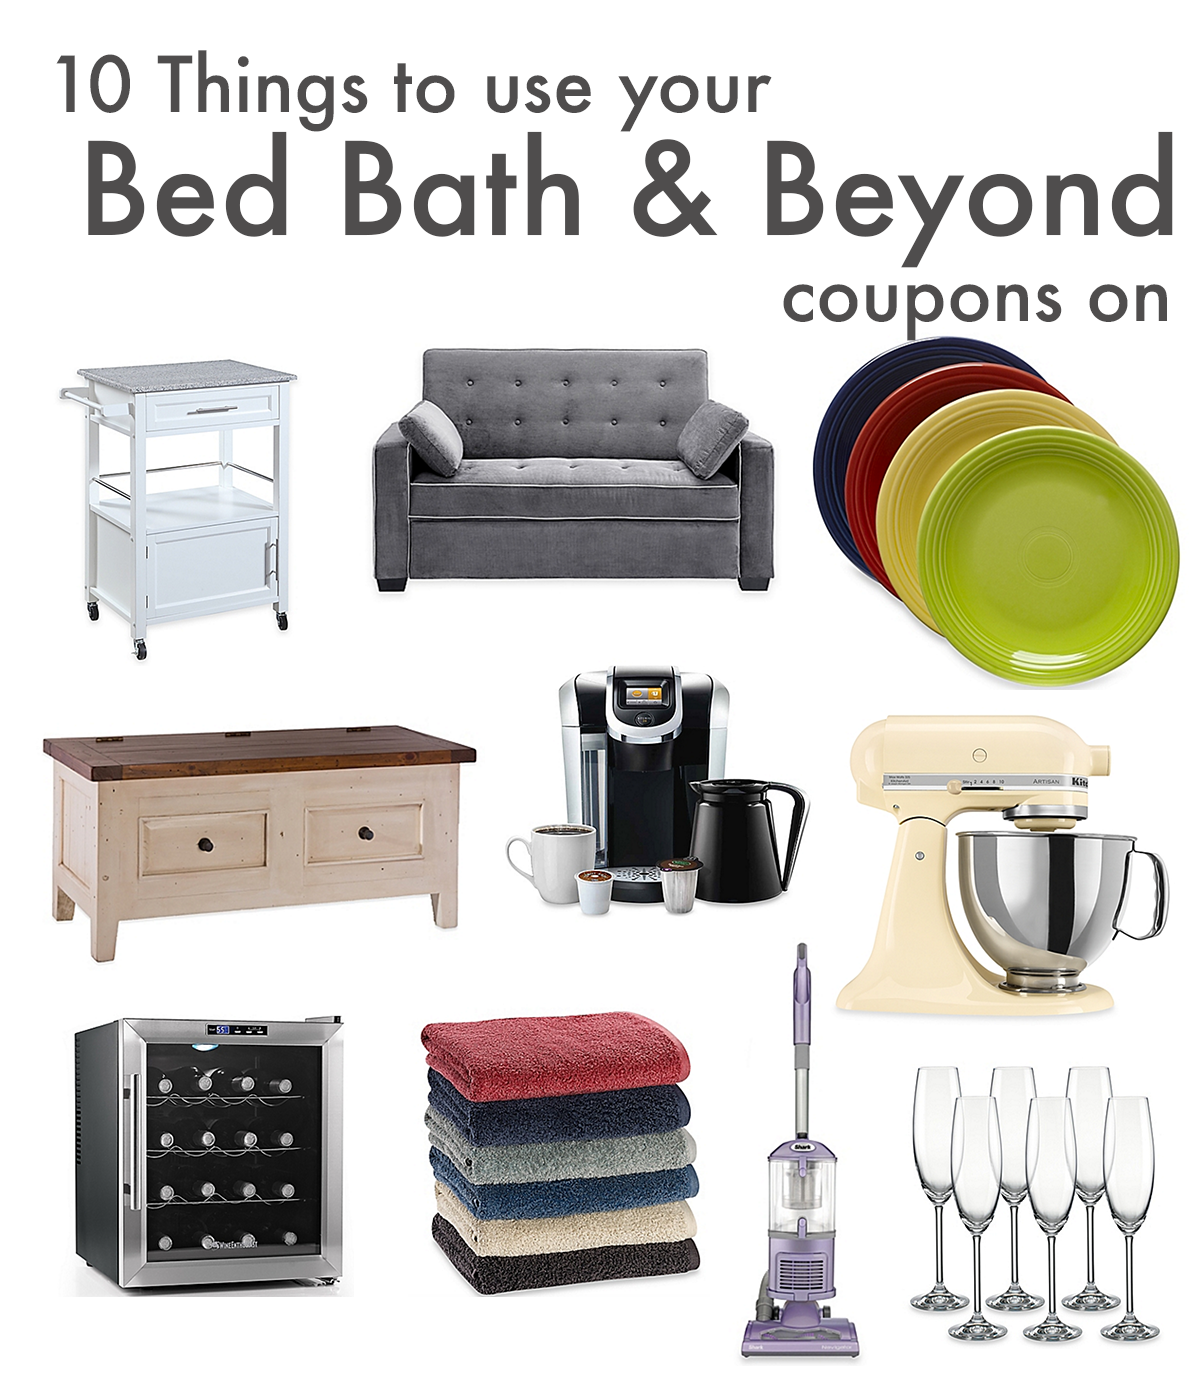 10-things-to-use-your-bed-bath-and-beyond-coupon-on